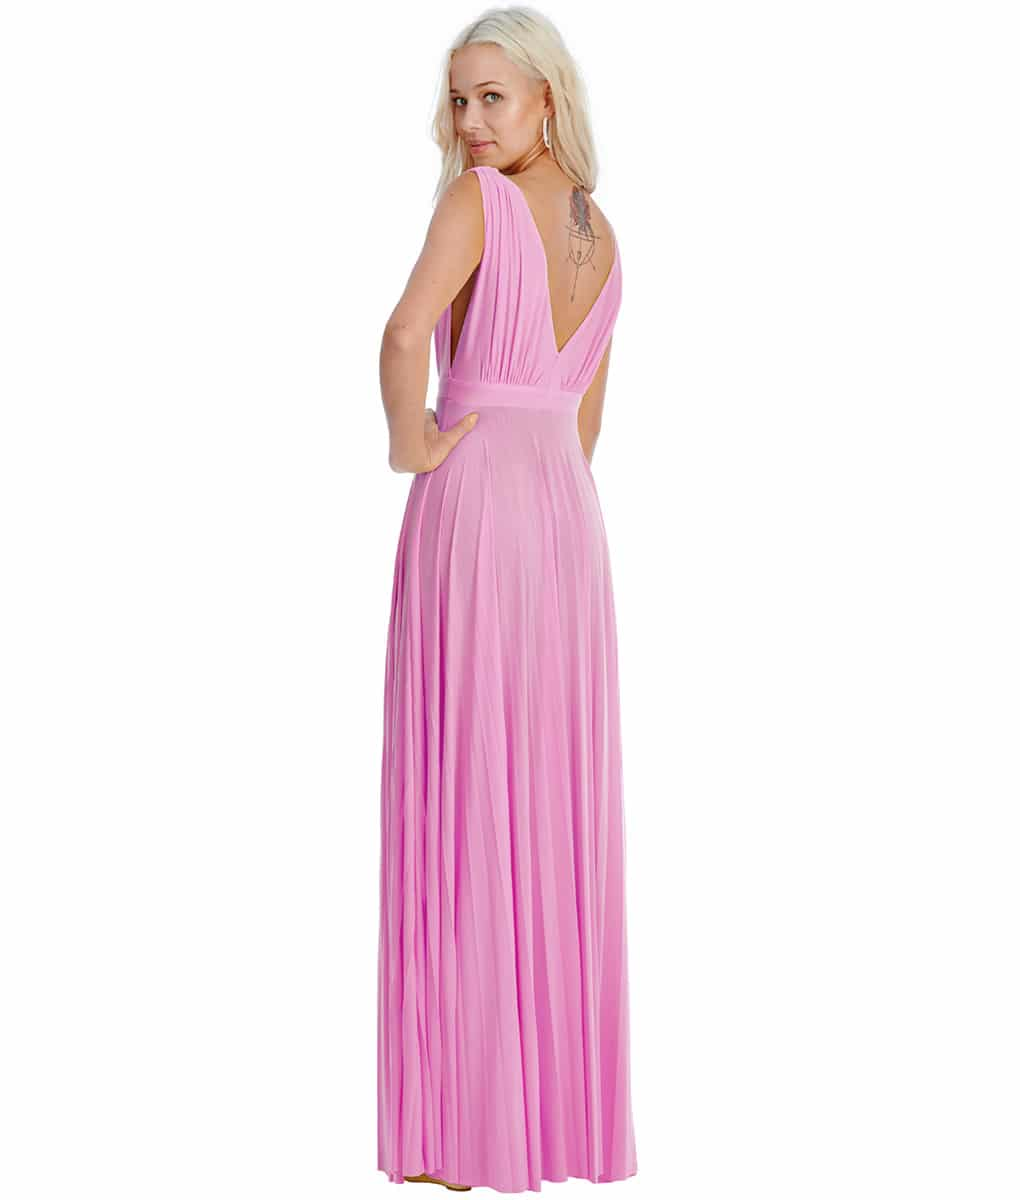 Alila-Pink-plunge-neck-bridesmaid-dress-city-goddess